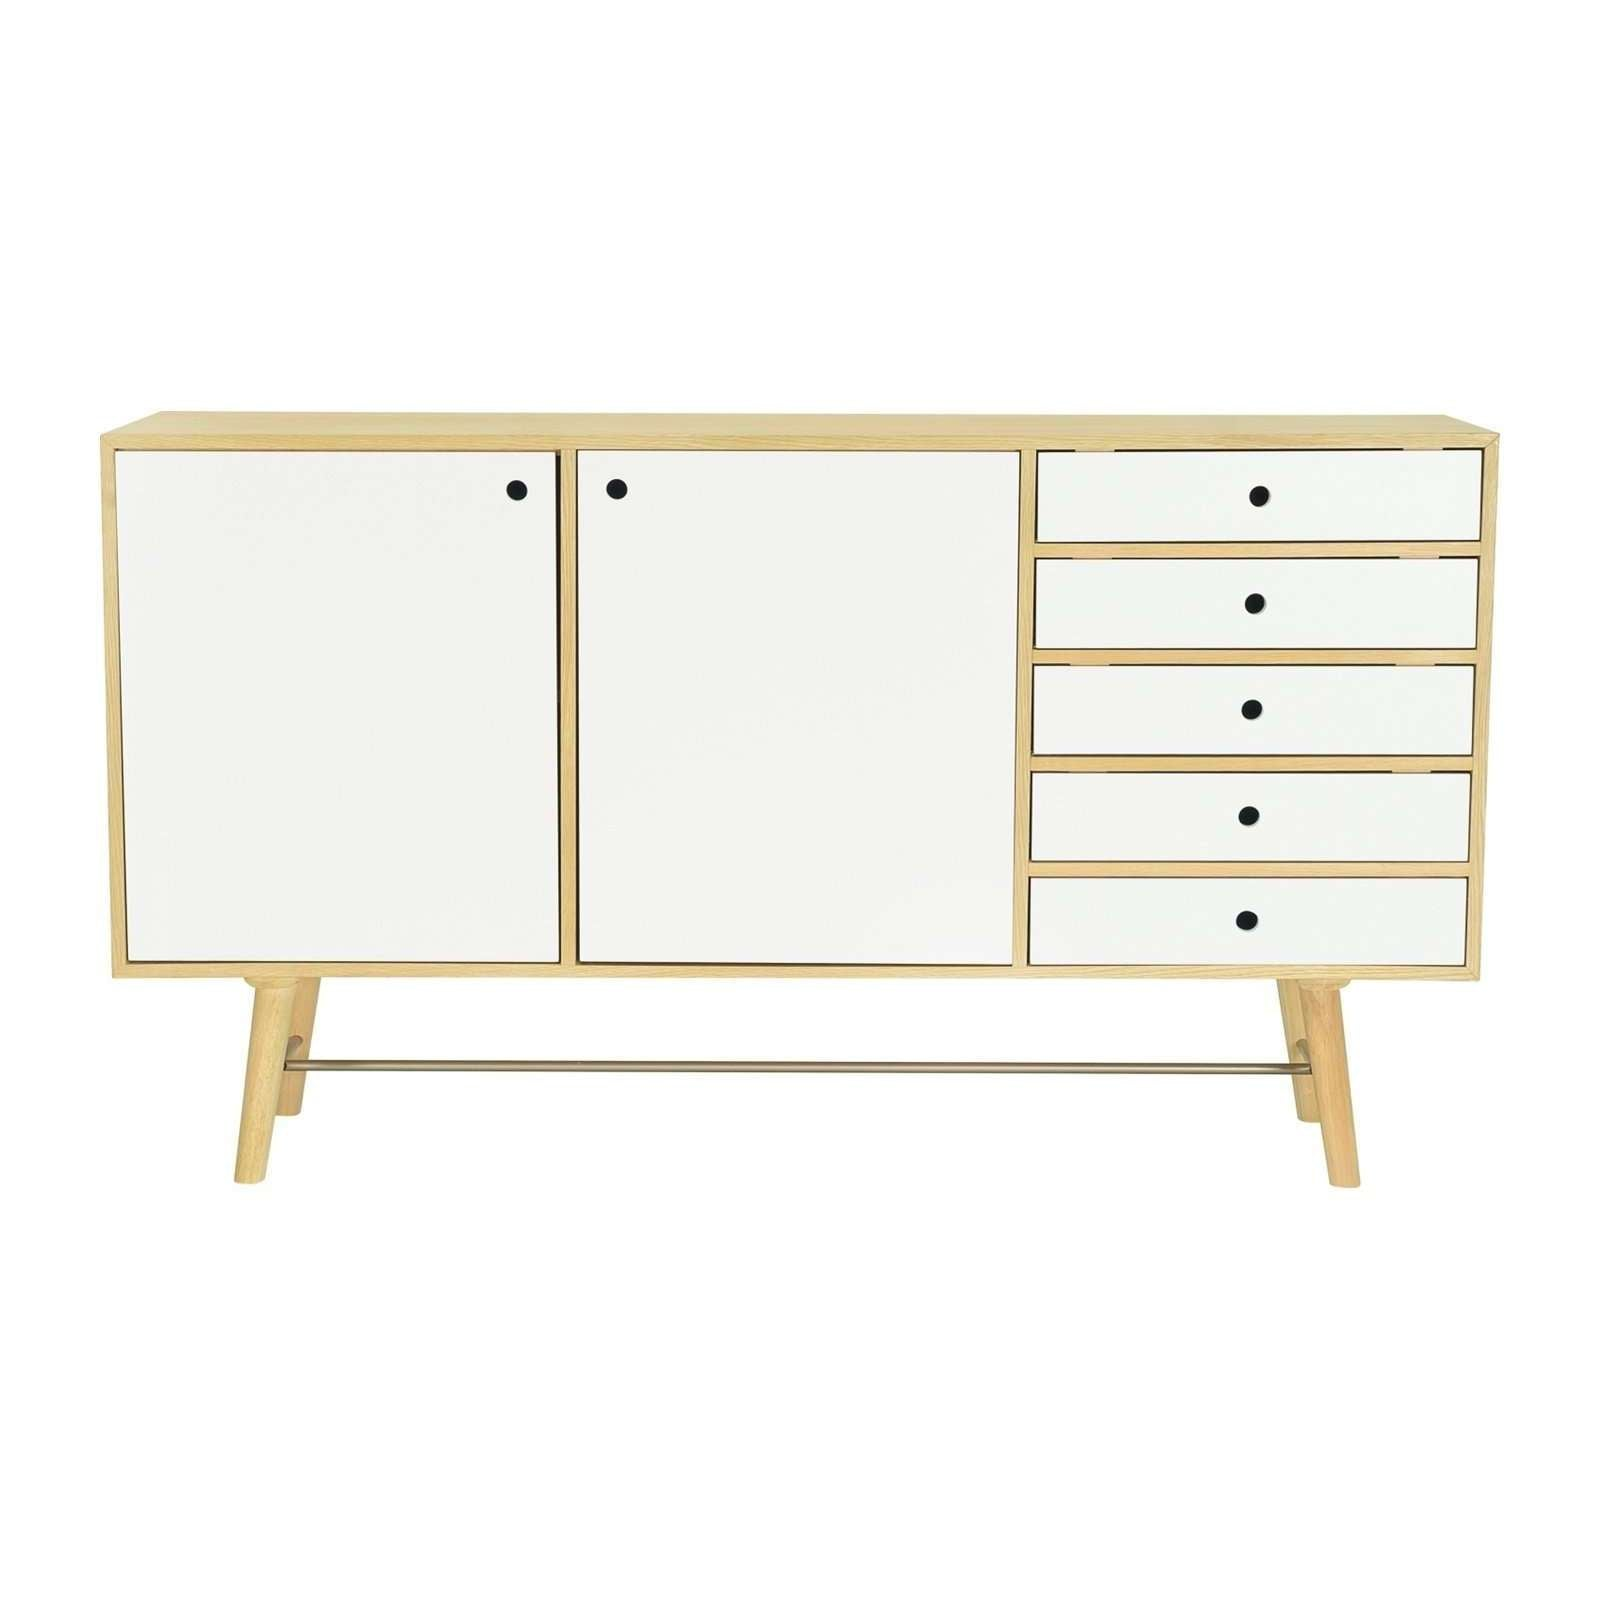 AXTELL Sideboard In Oak Veneer Body With White Lacquered Door And Drawer